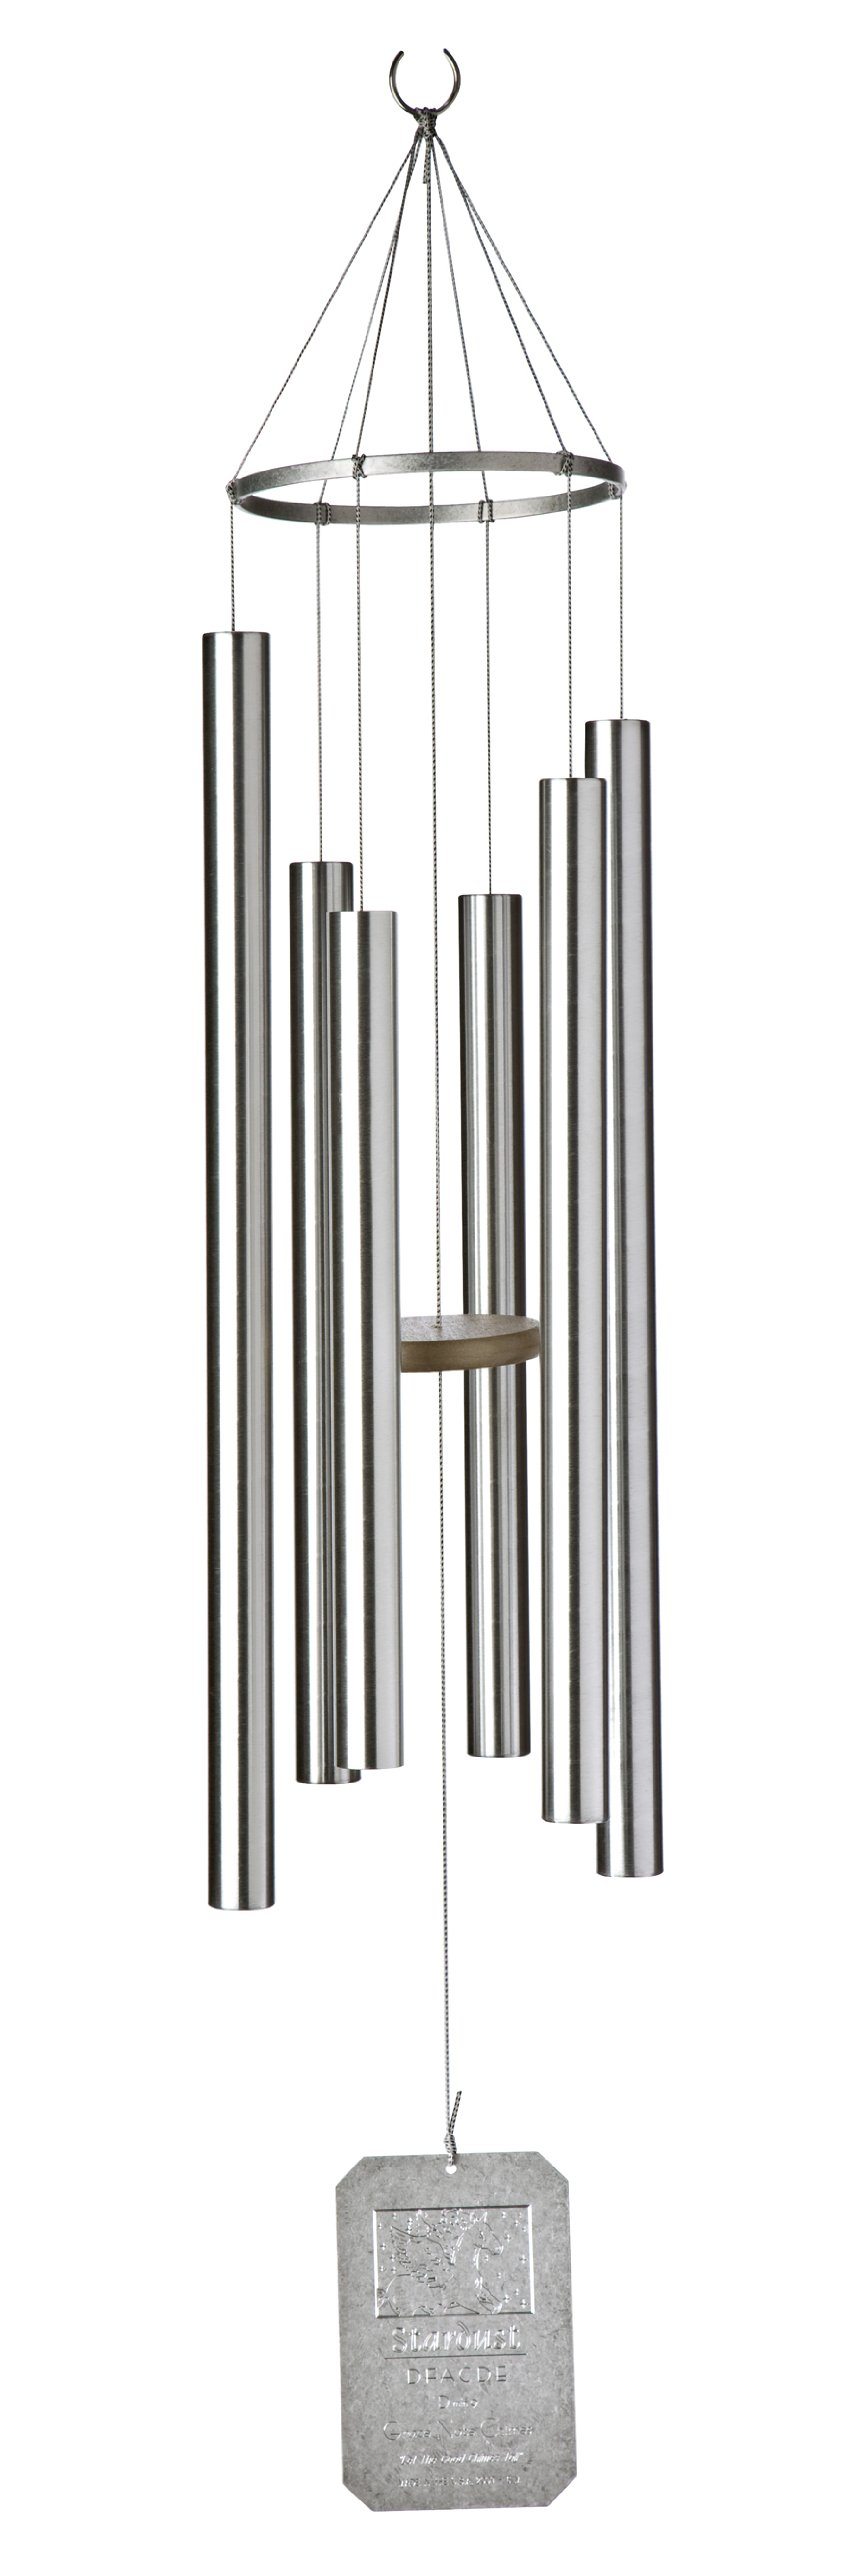 Grace Note Chimes 3M 42-Inch Himalayan Echo Wind Chimes, Medium, Silver by Grace Note Chimes